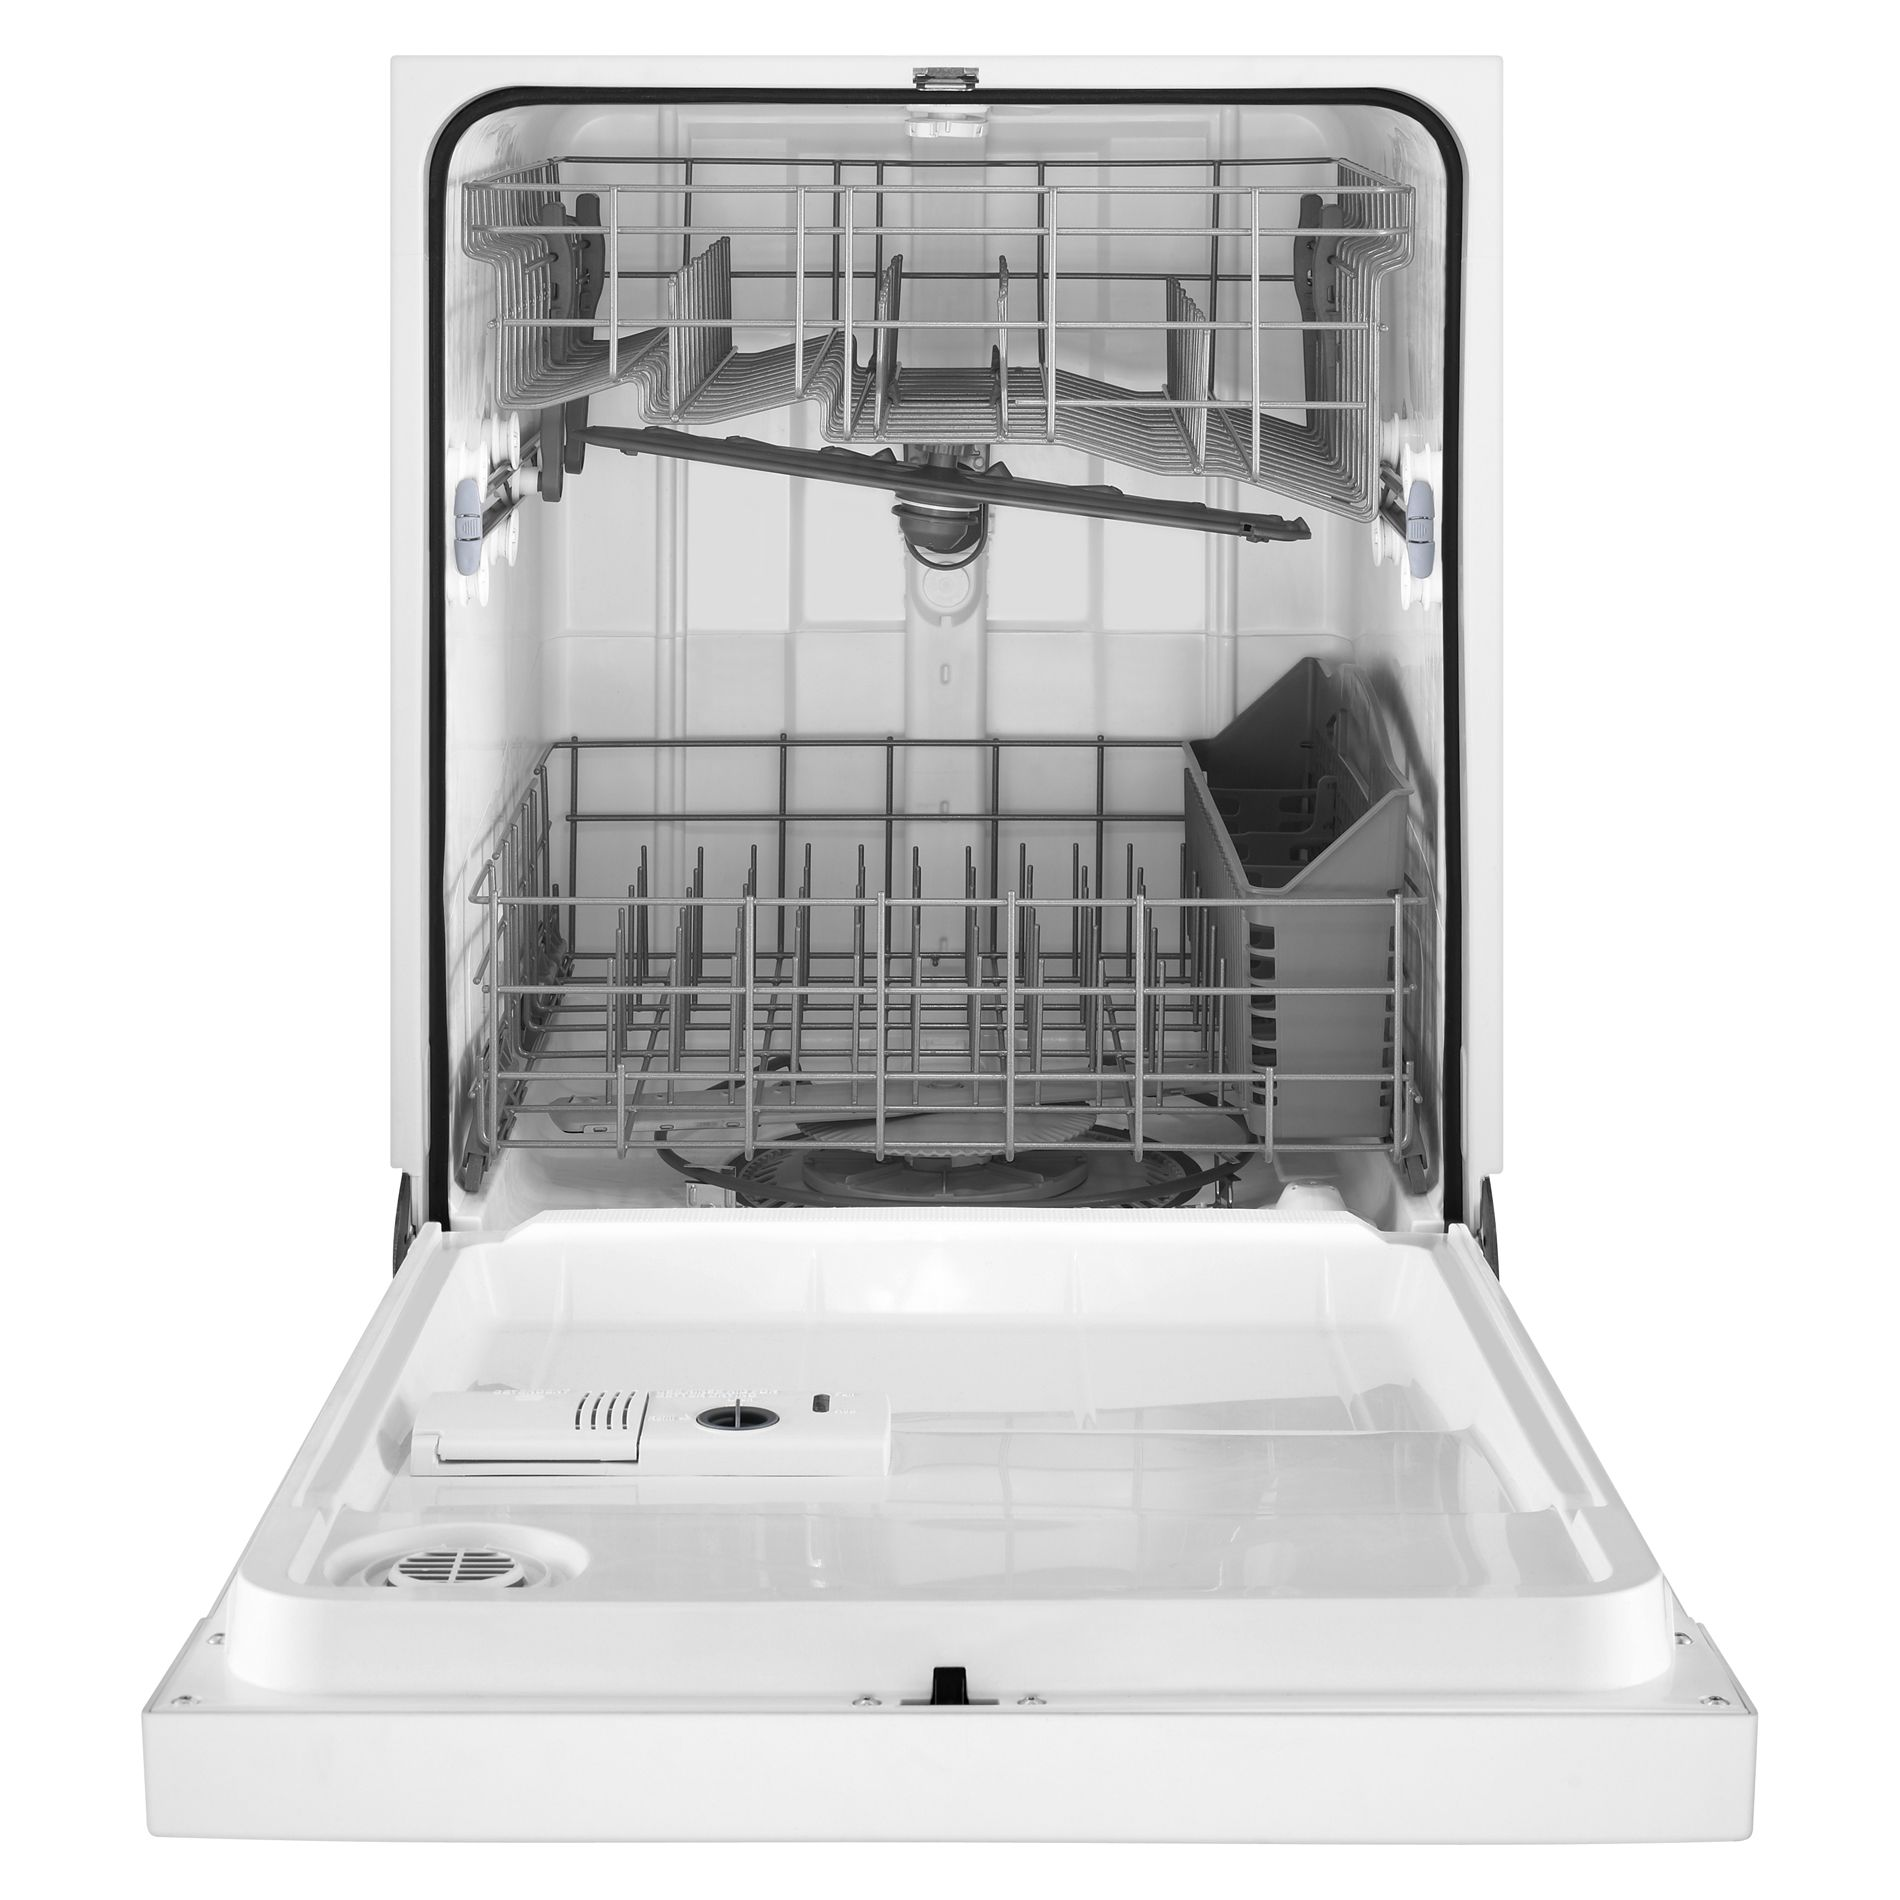 Maytag JetClean® Plus 24 in. Built-In Dishwasher with Sanitize Option